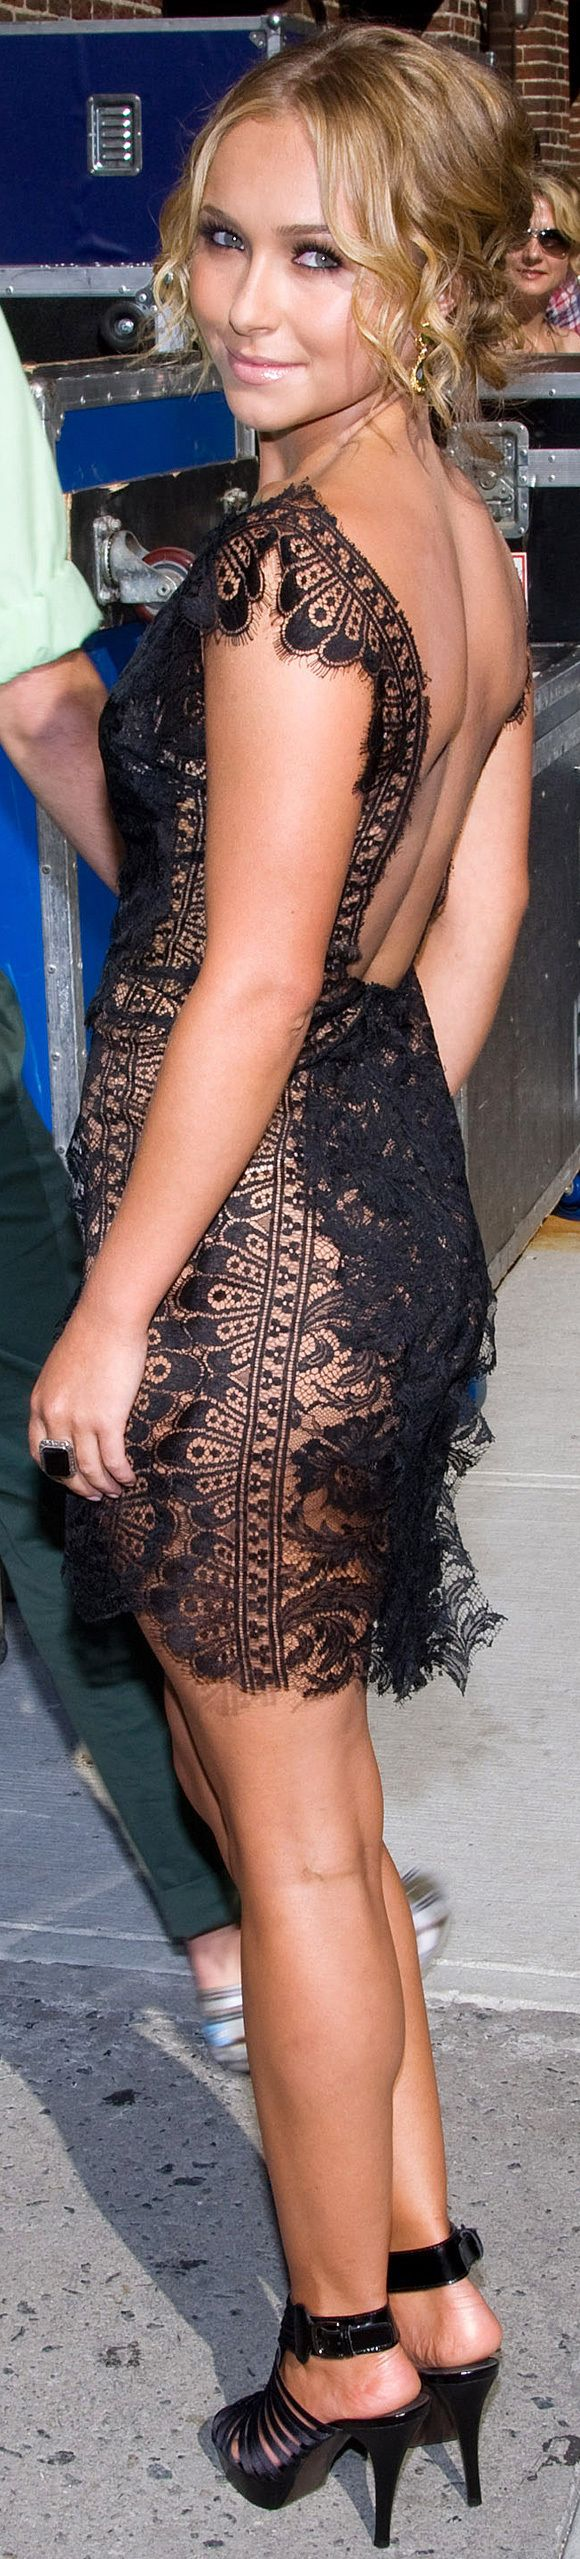 Hayden Panettiere I love her and and outfit might make it my New Year's Eve outfit this year